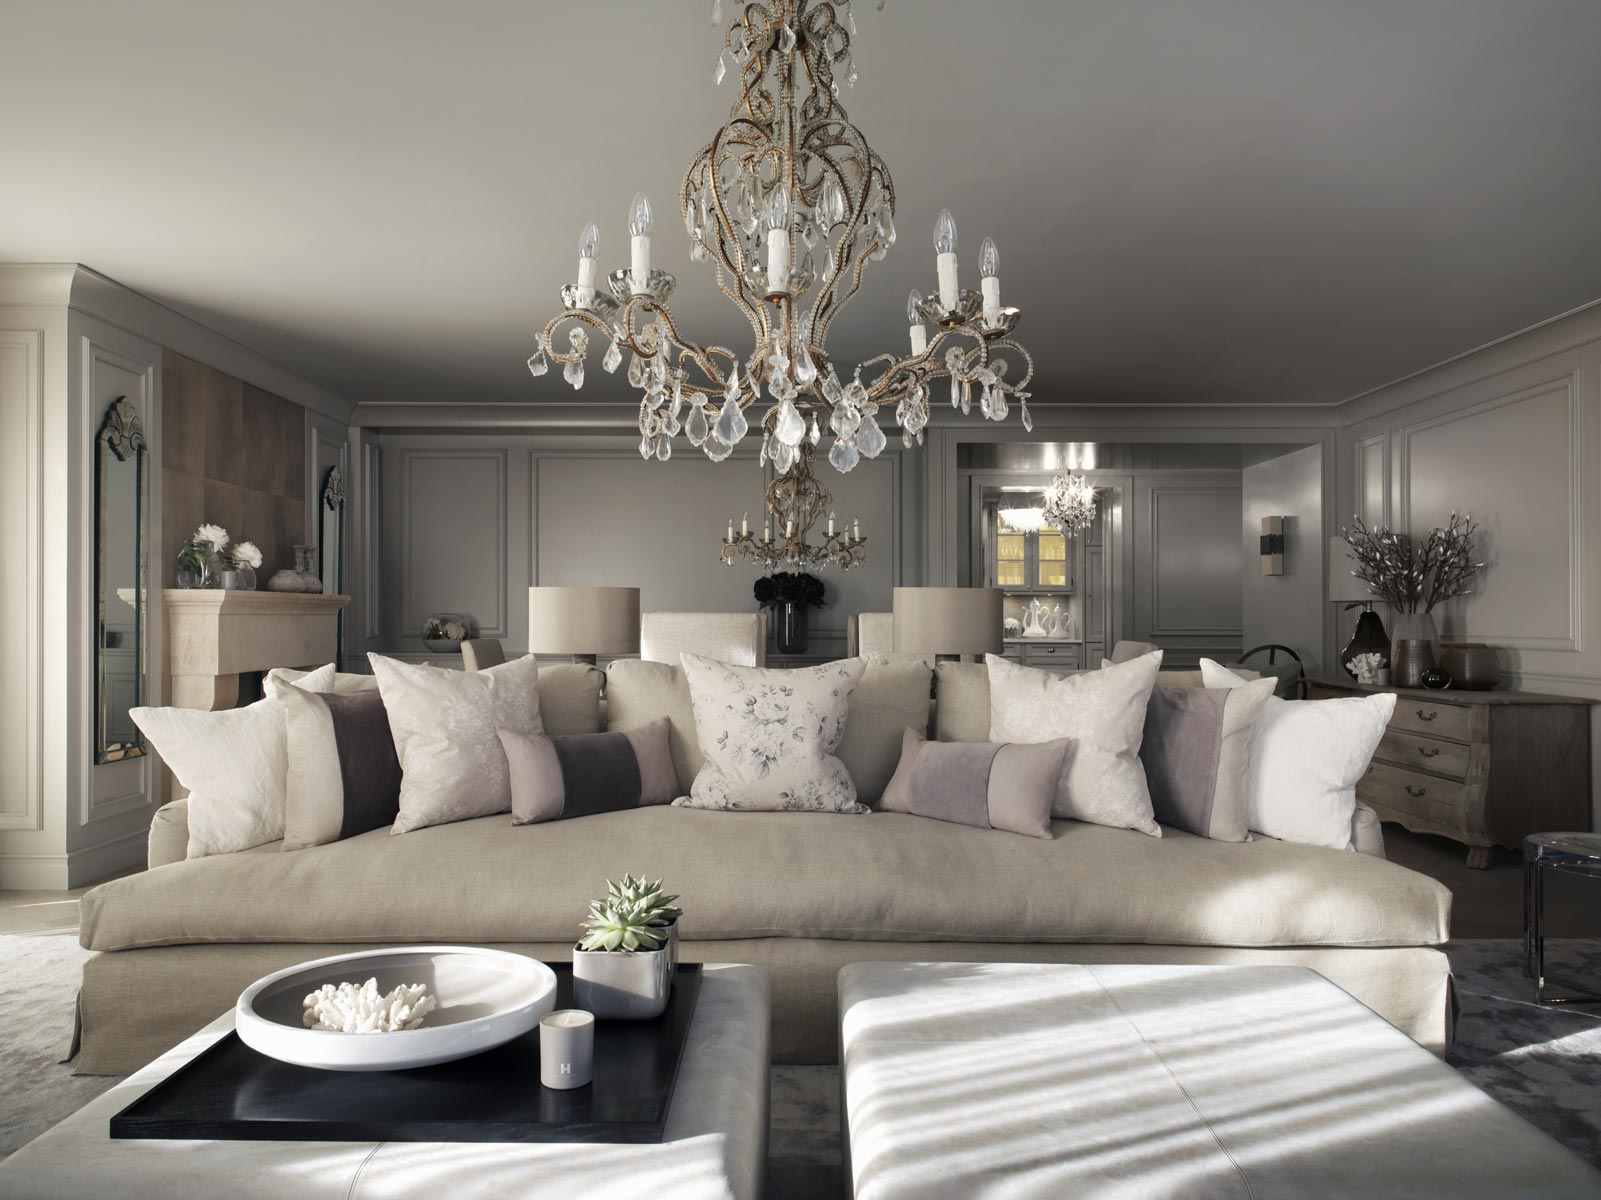 Top 10 kelly hoppen design ideas for Home decor inspiration